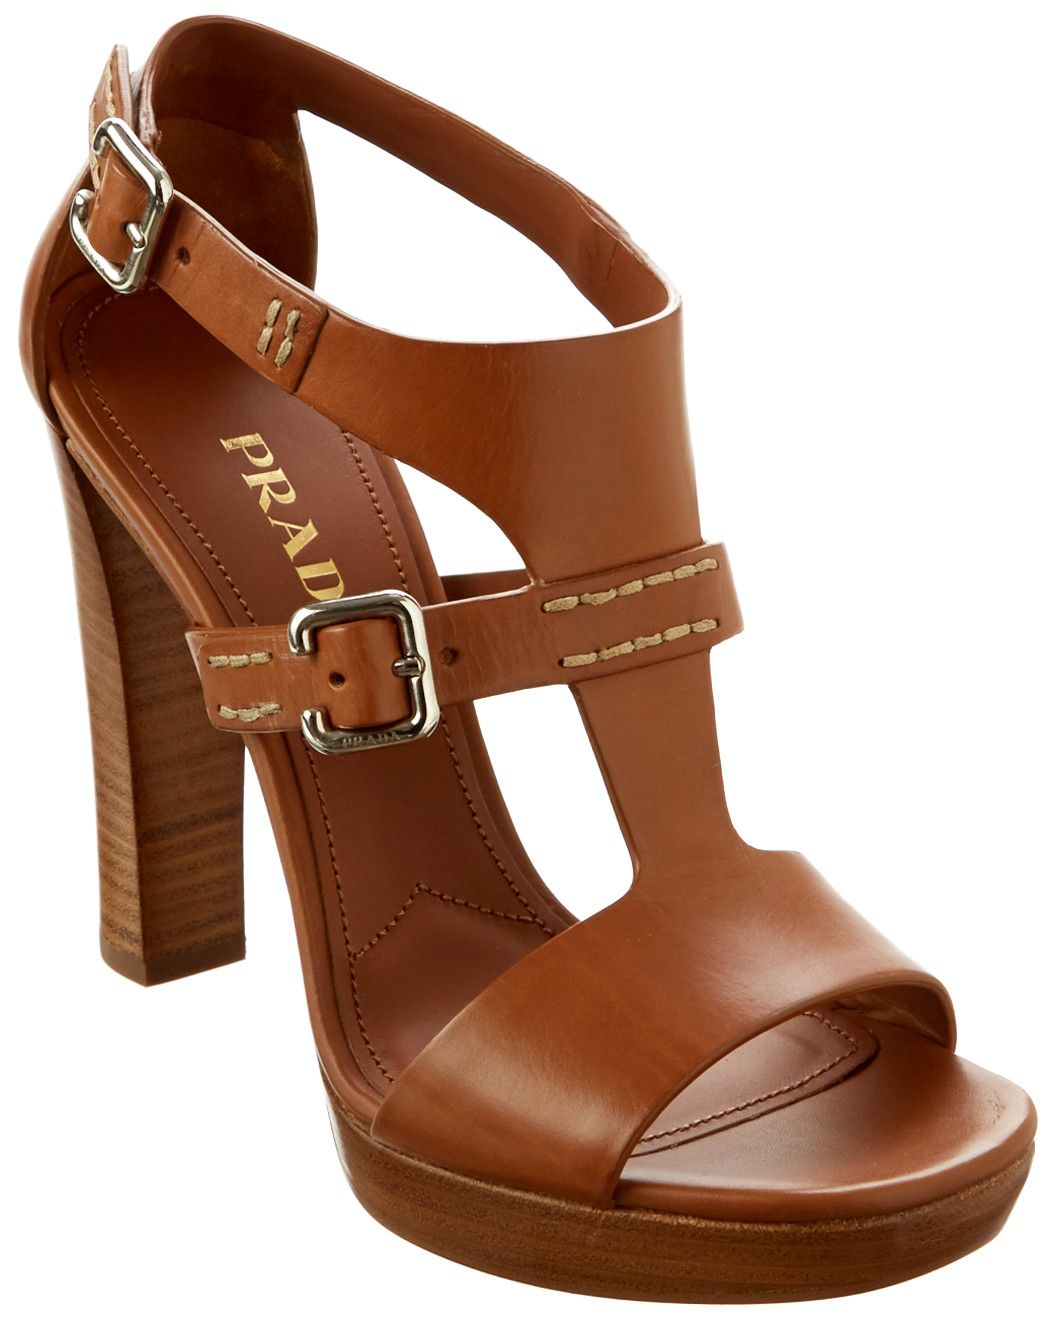 a635f1299ac1 Spotted this Prada Leather Stacked Heel Sandal on Rue La La. Shop (quickly!)